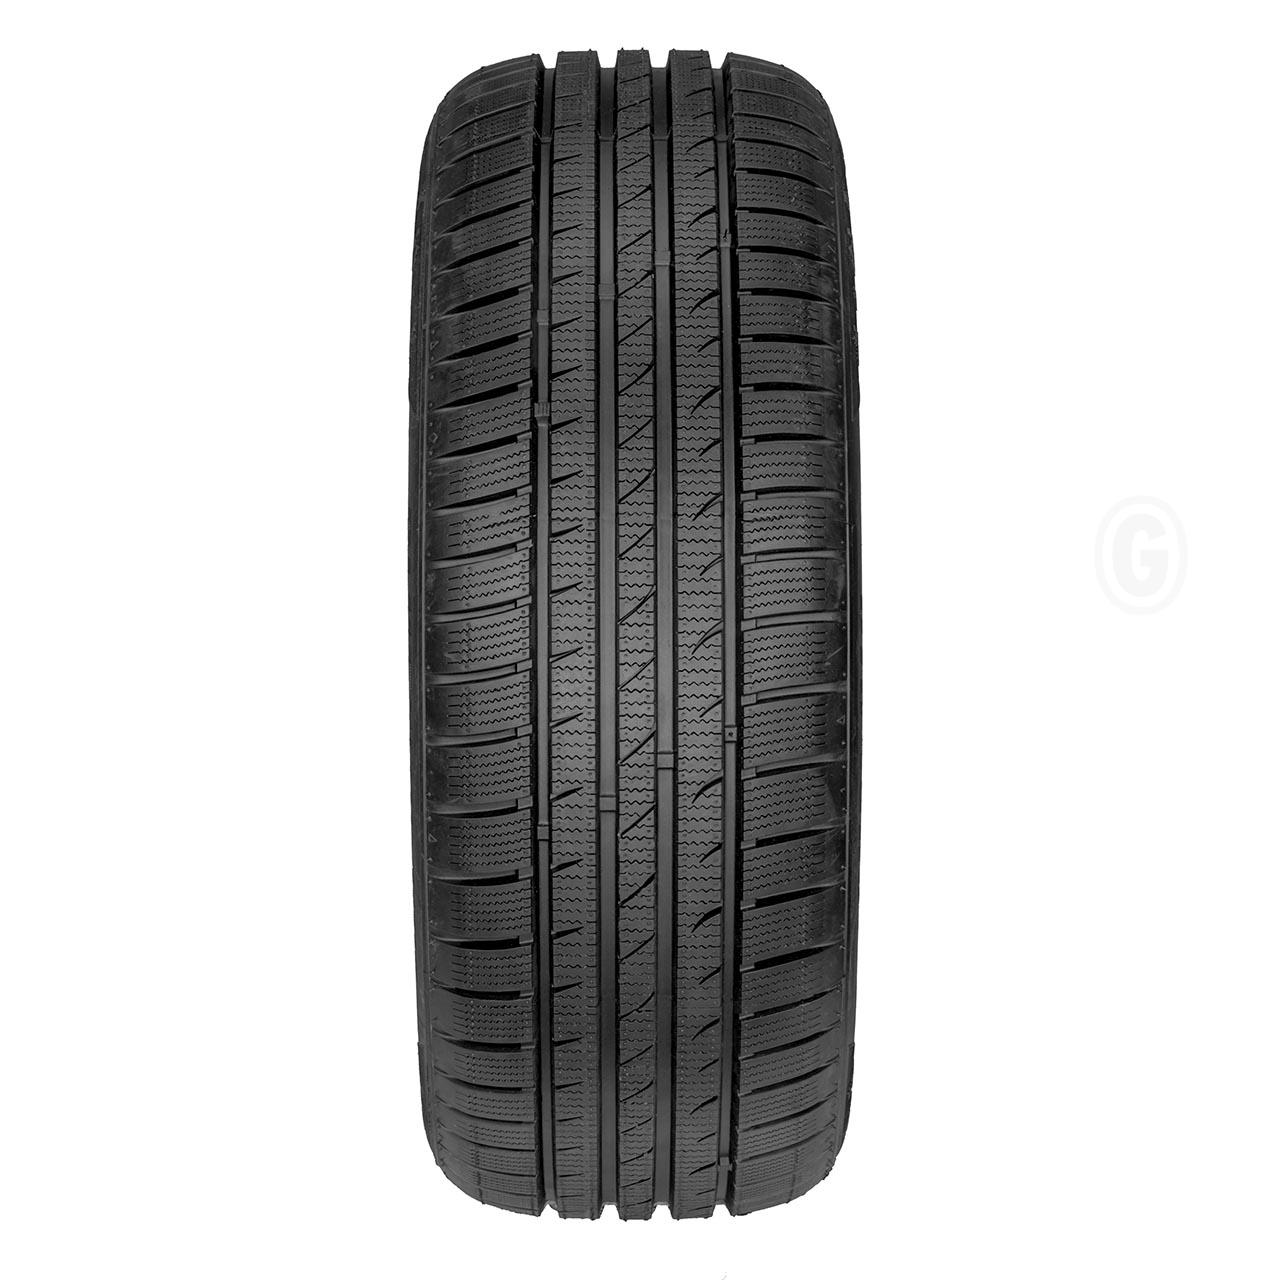 Fortuna Gowin UHP 225/40R18 92V XL